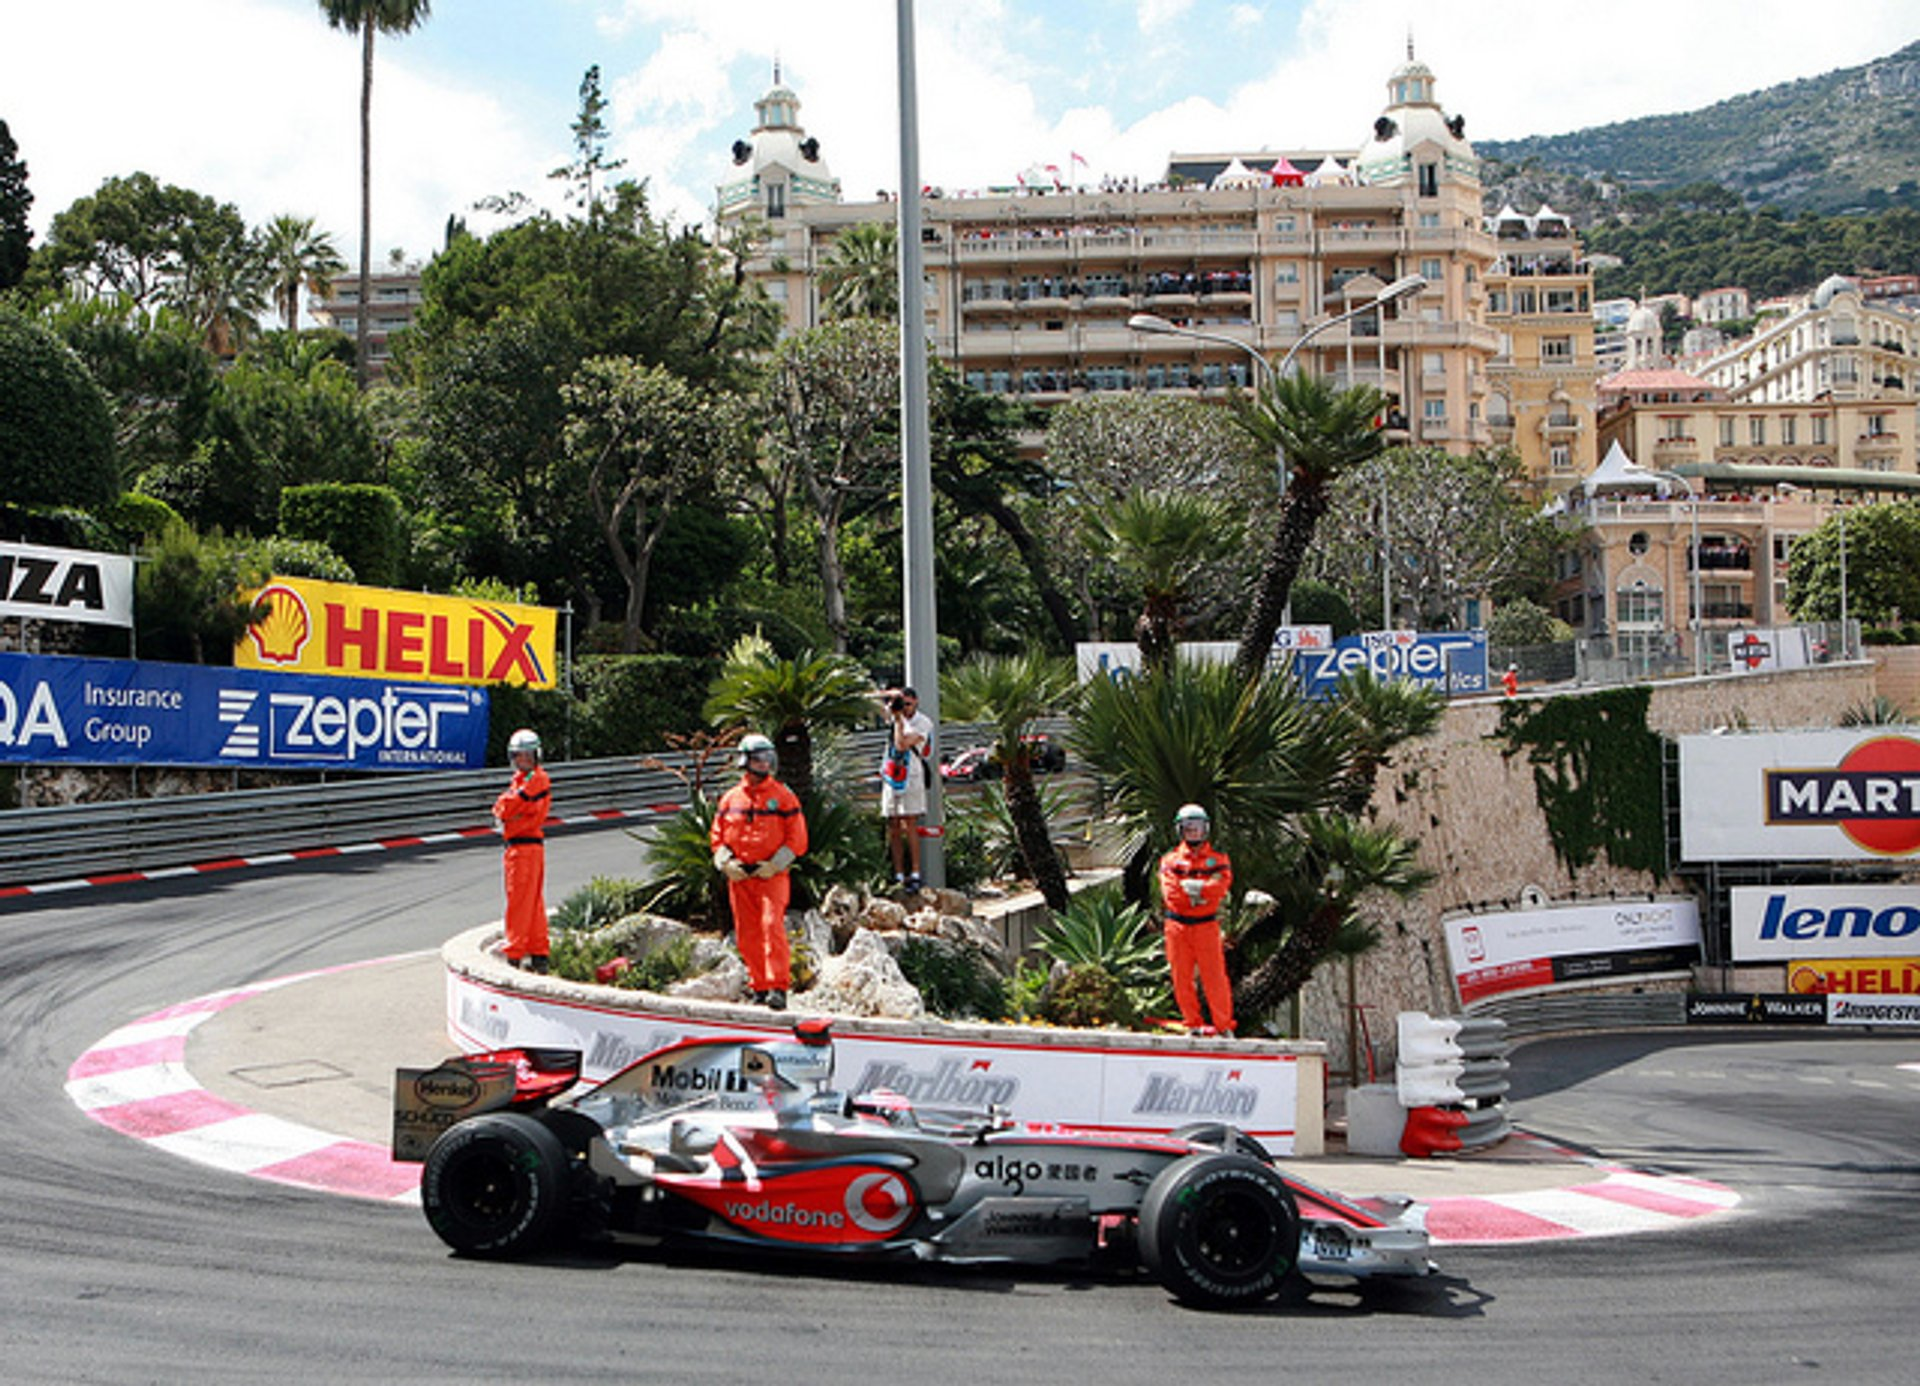 Monaco Grand Prix in Provence & French Riviera - Best Season 2020